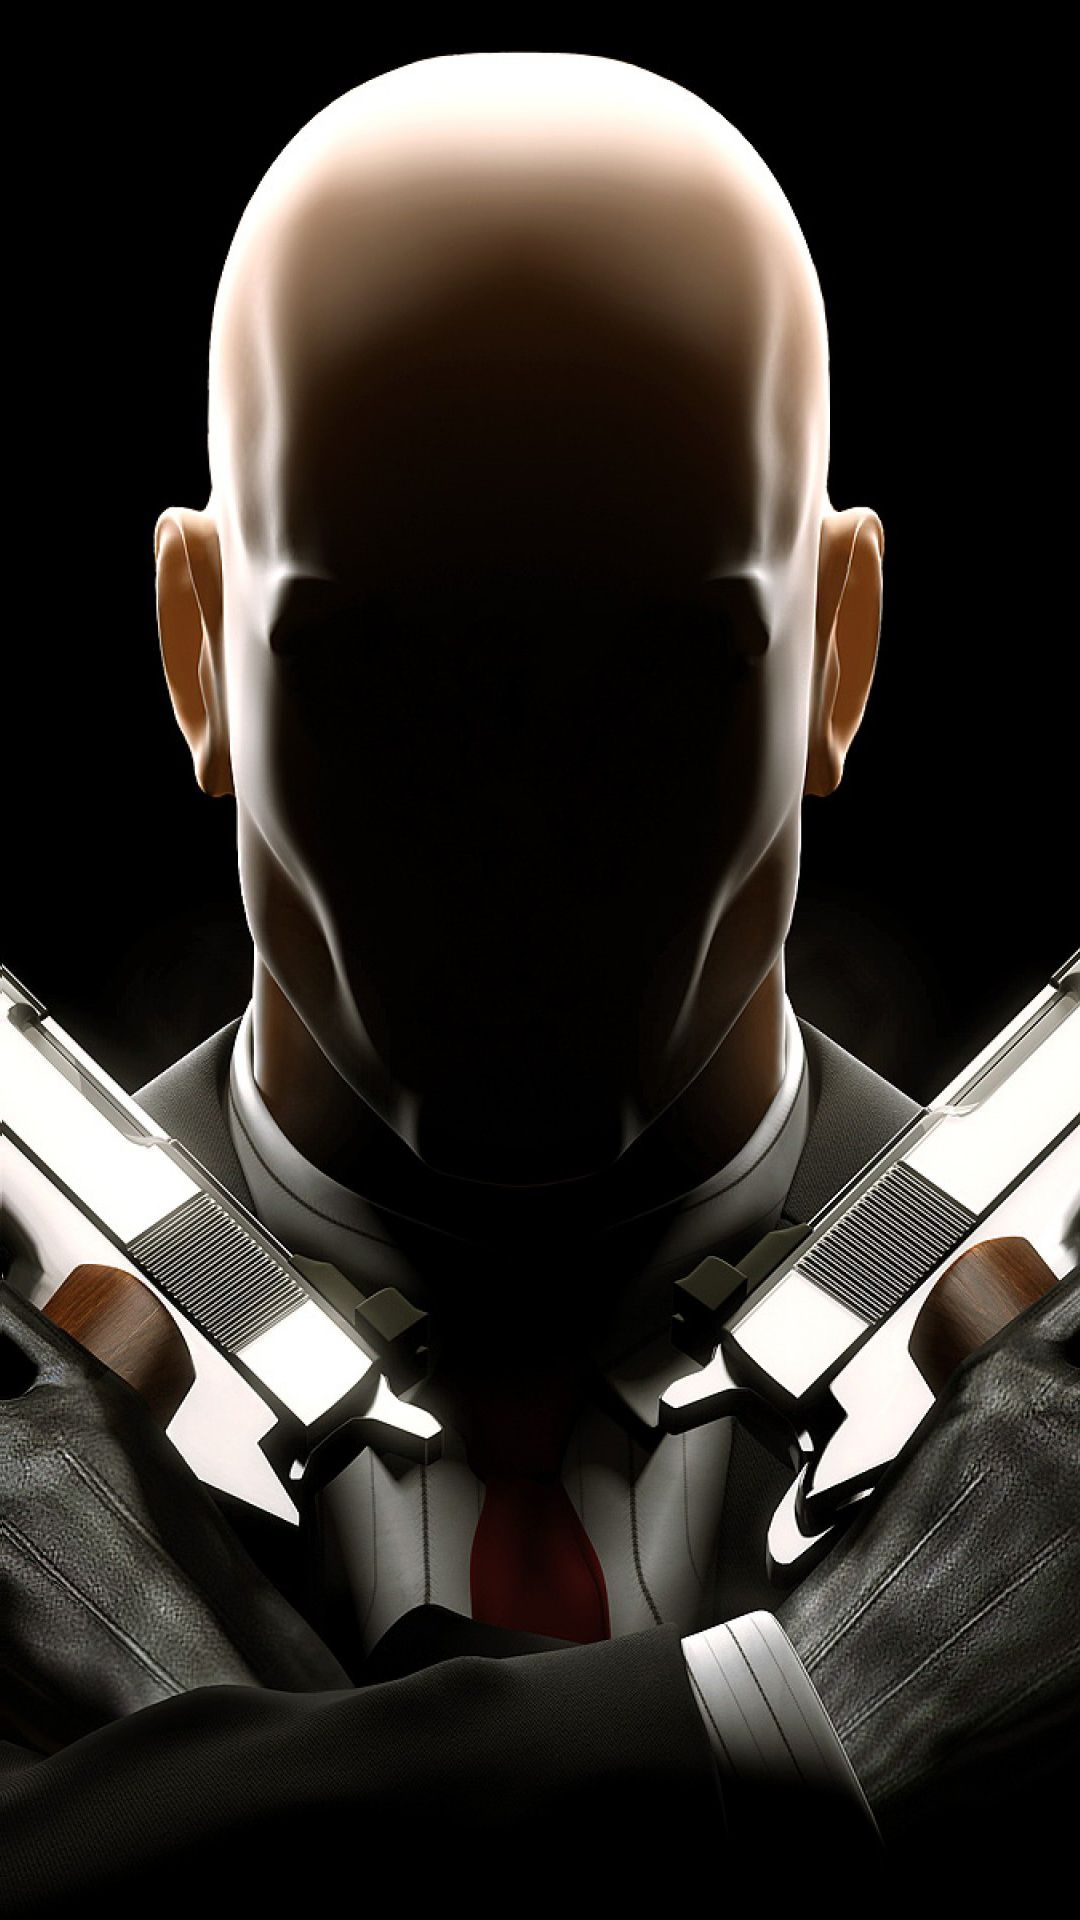 1080x1920 Hitman Free iPhone 4 Wallpaper For Your Phone